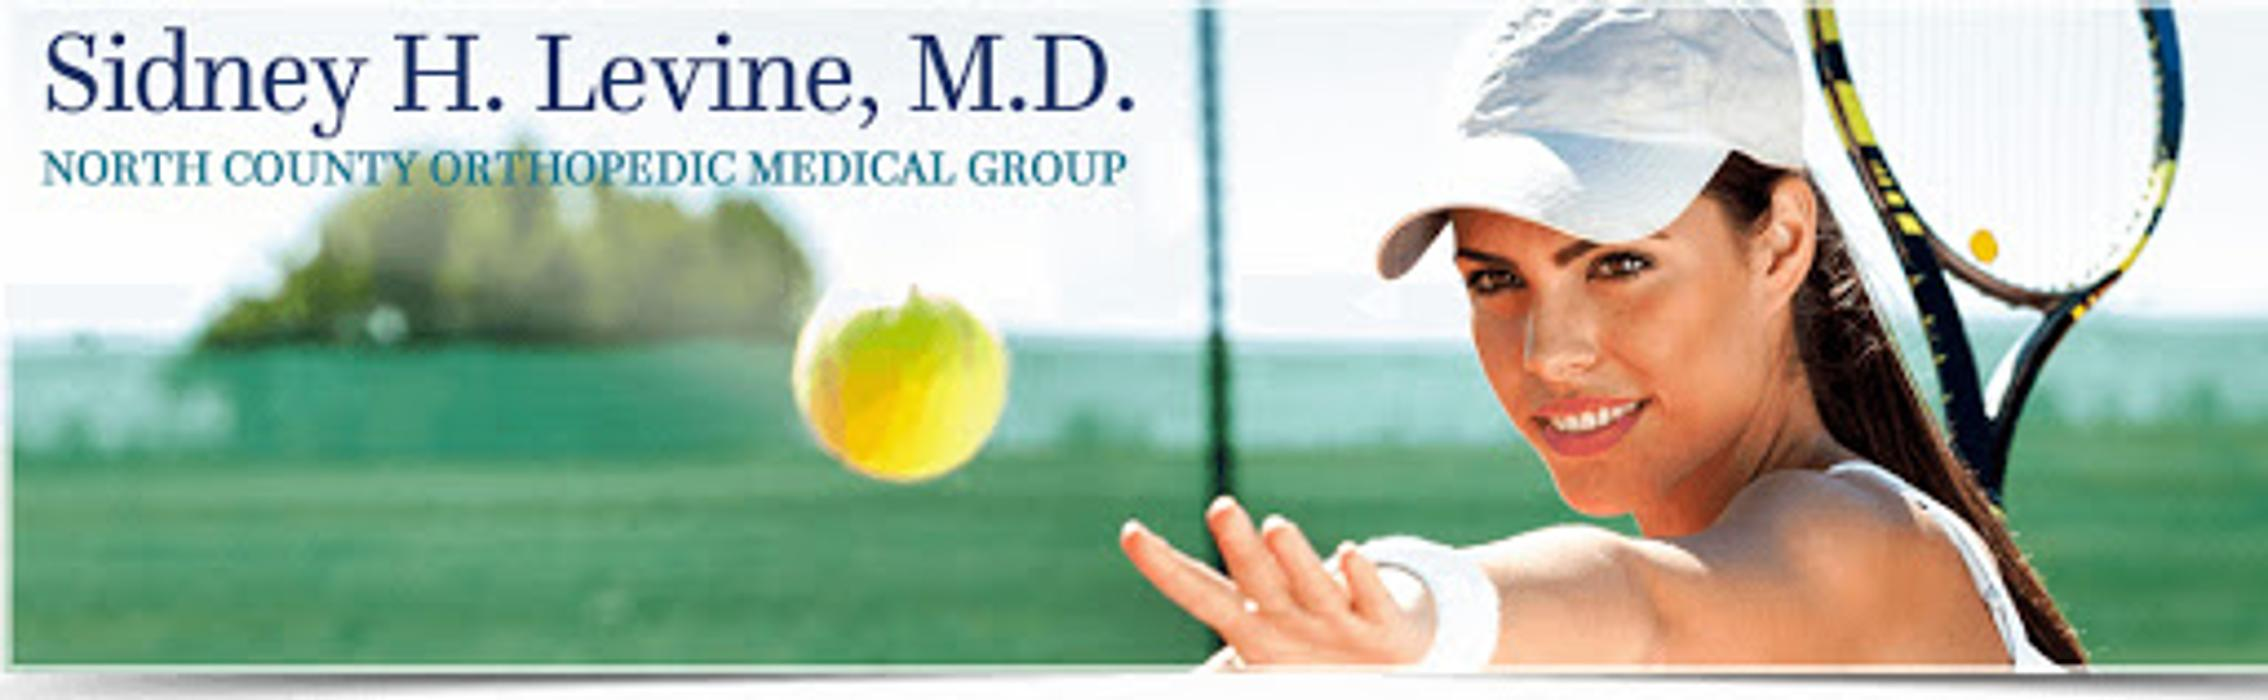 North County Orthopedic Medical Group